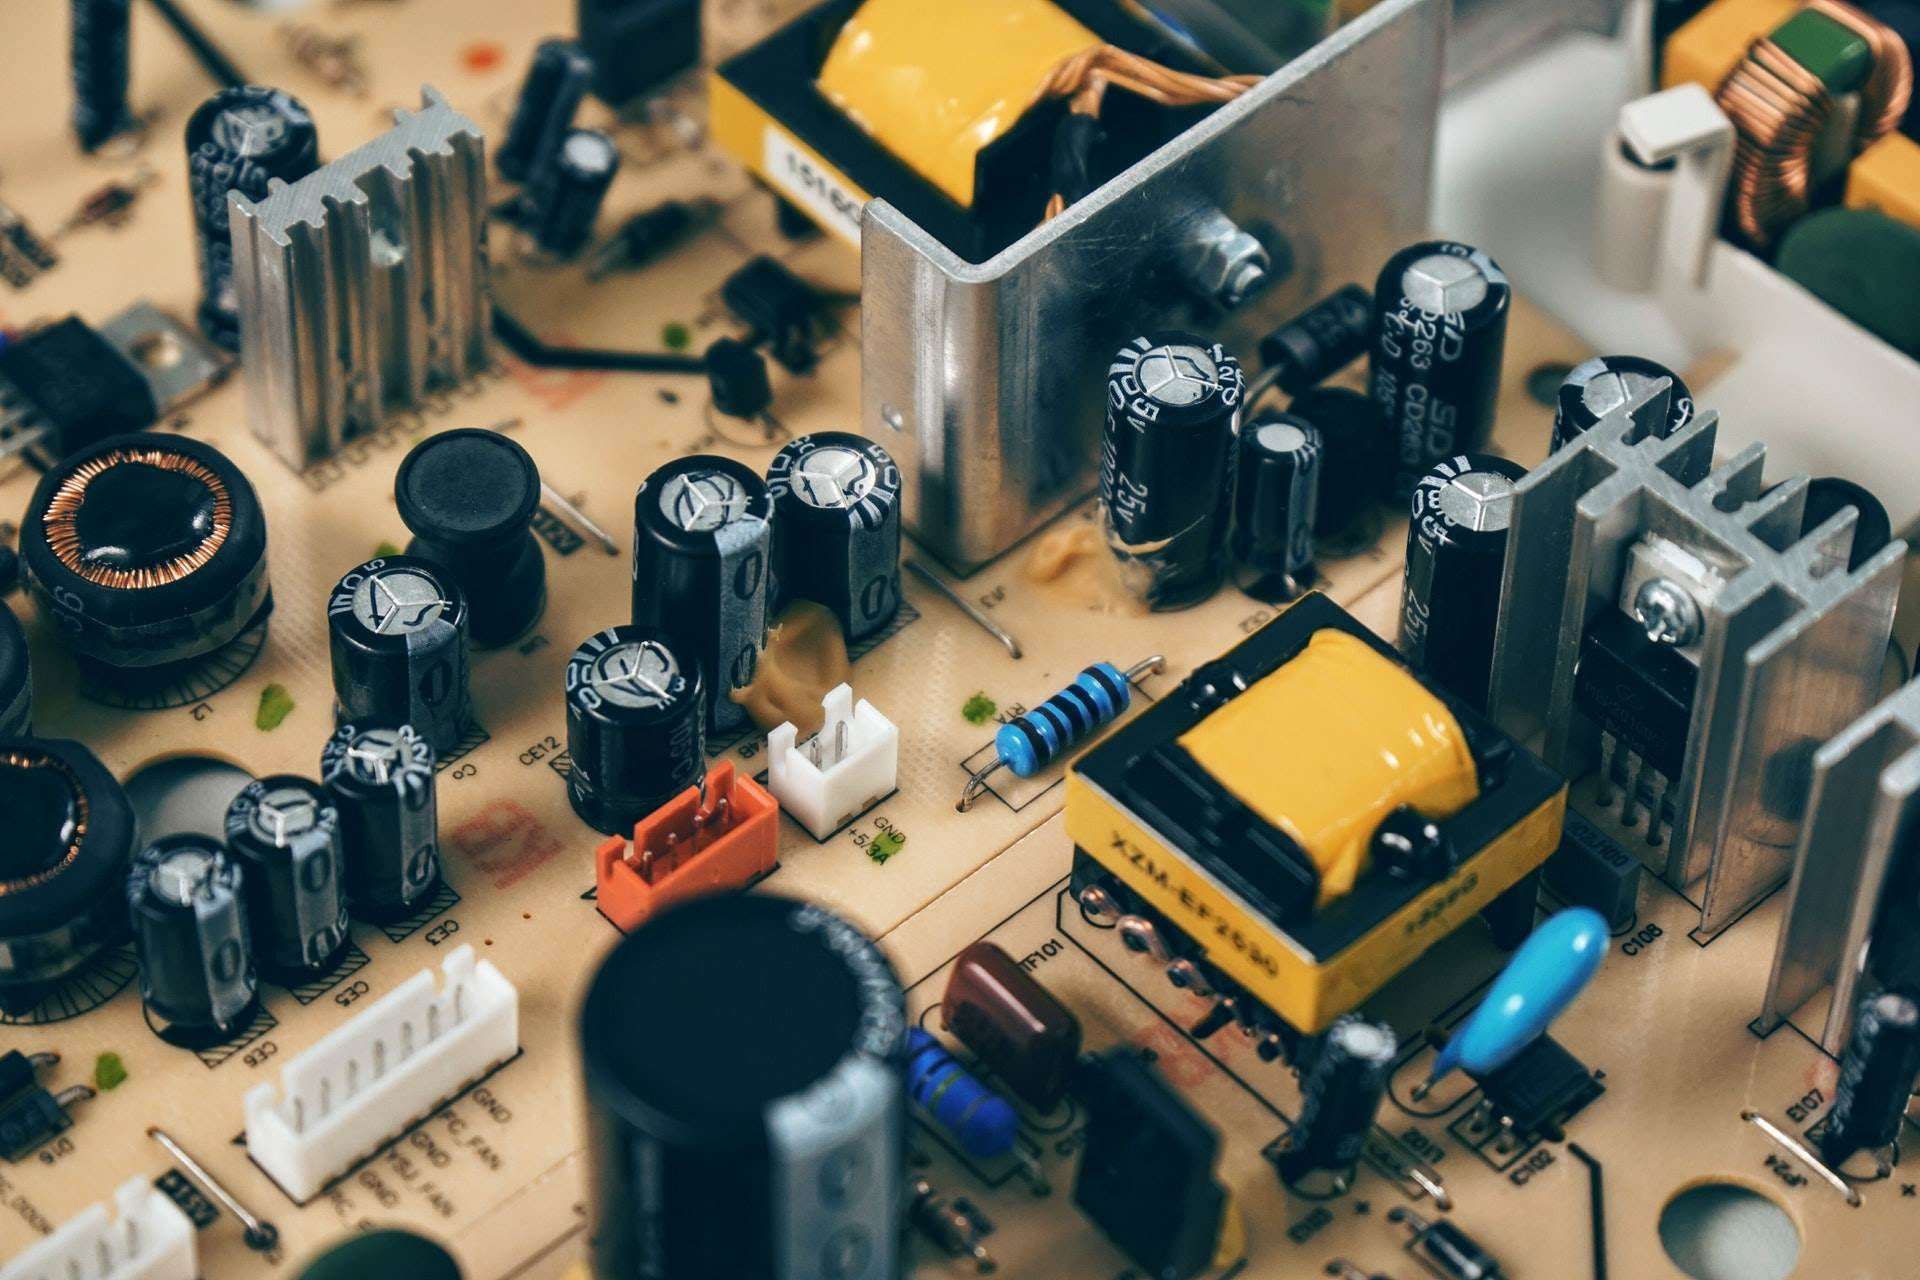 What Skills Do You Need To Build Your Own Electronics?